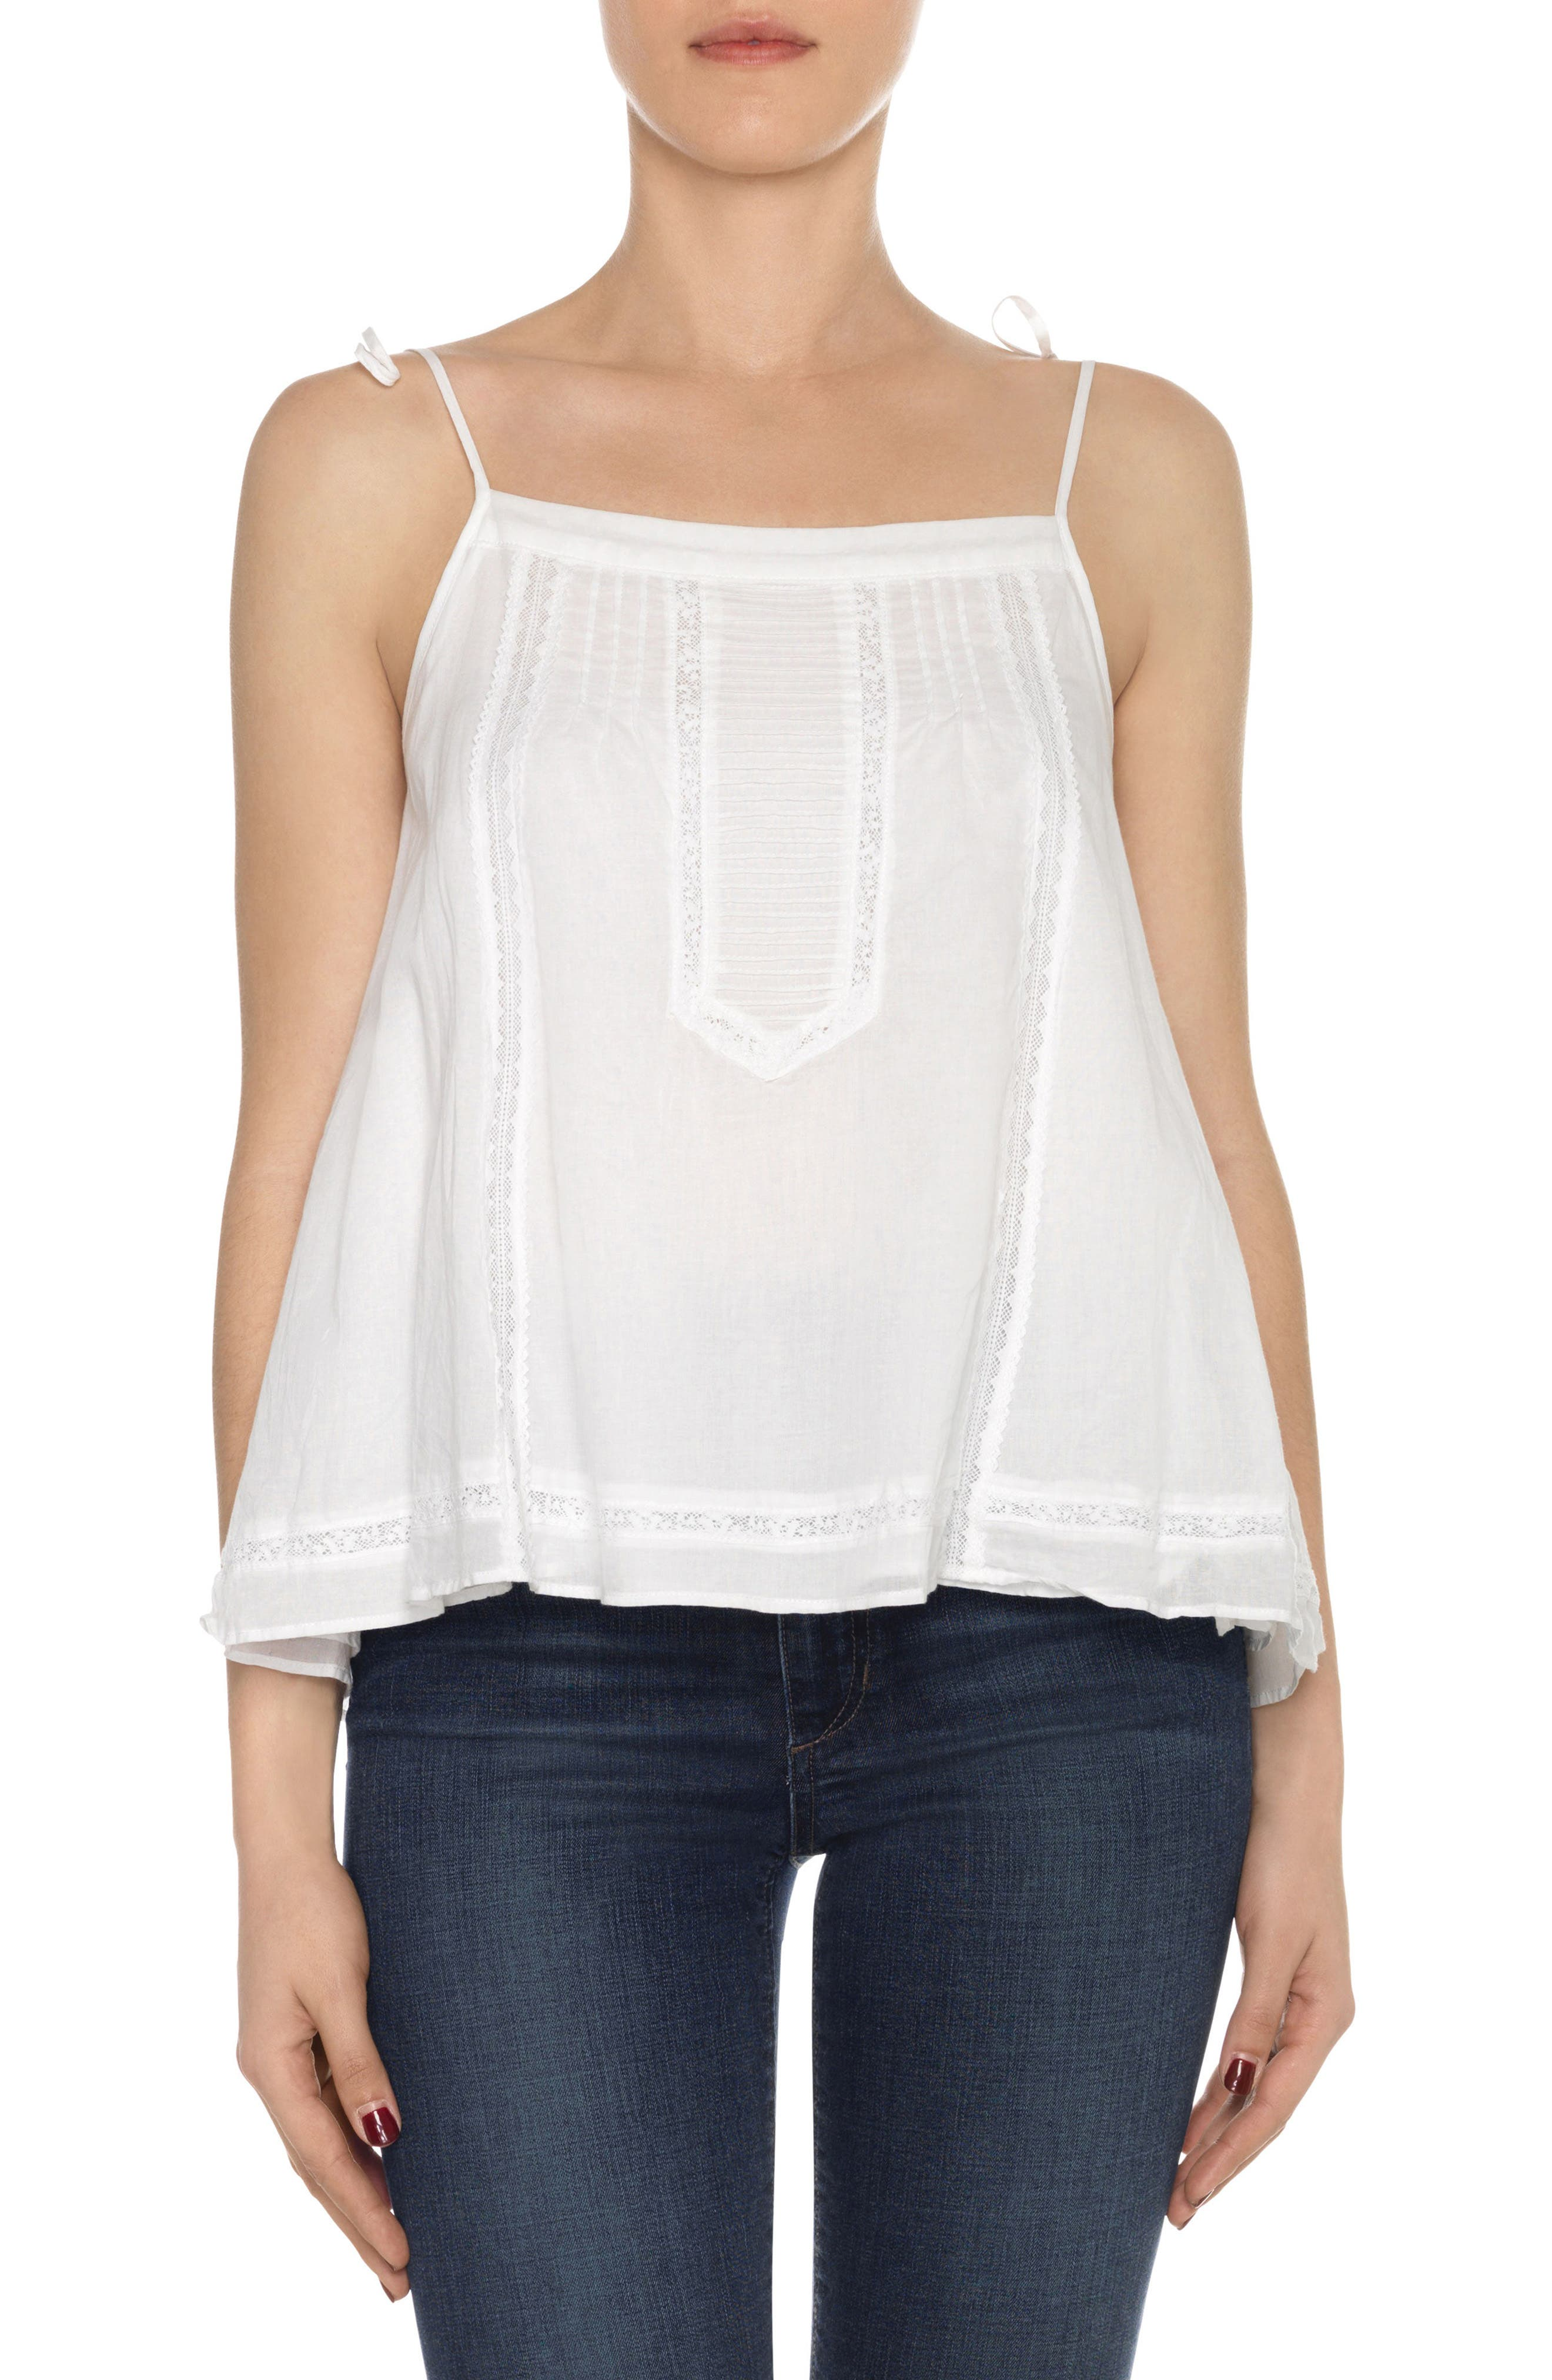 Joe's Gianna Cotton Camisole